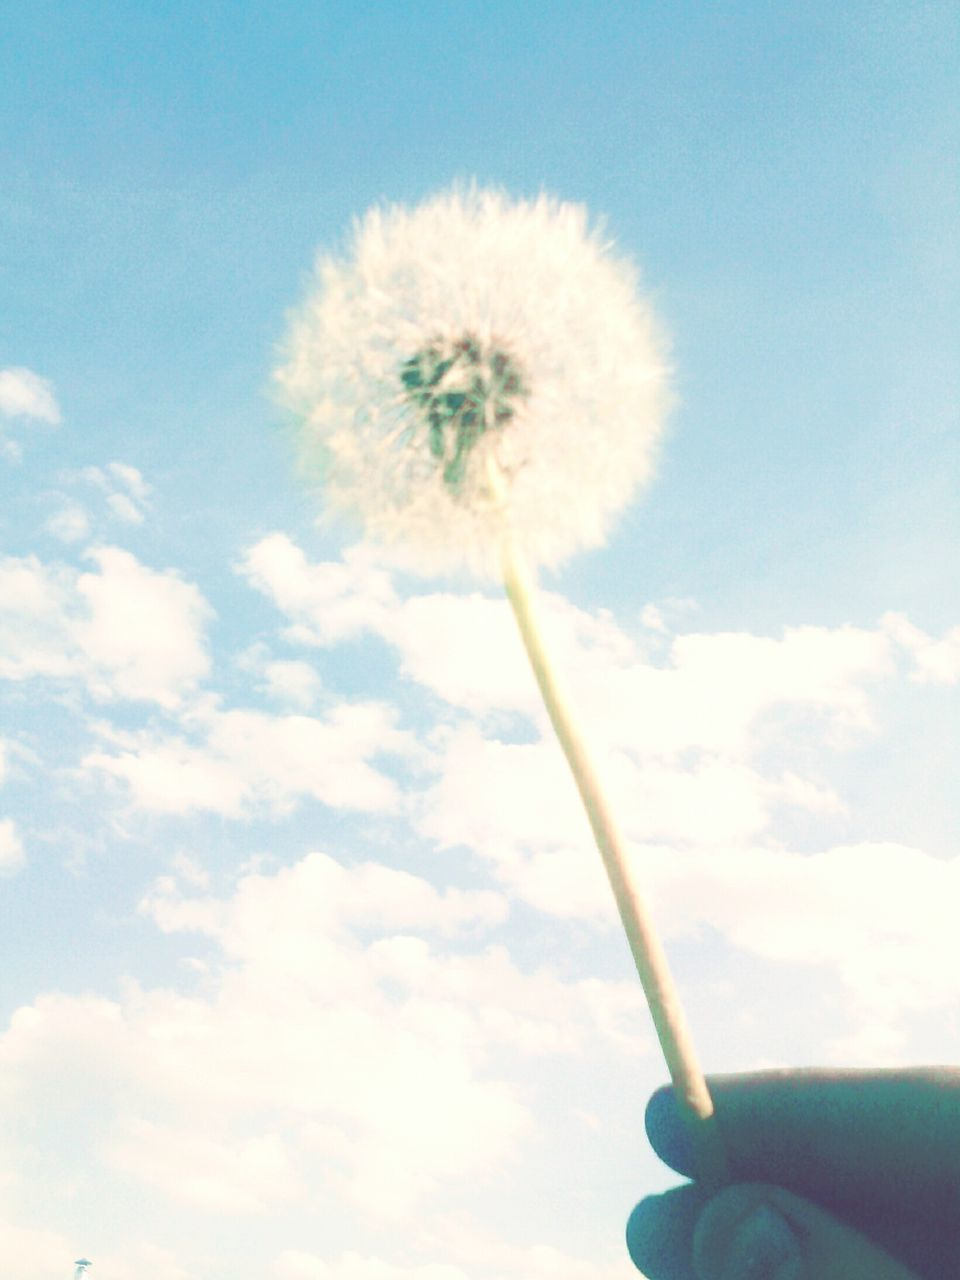 human hand, dandelion, human body part, flower, sky, holding, nature, one person, outdoors, close-up, fragility, cloud - sky, day, beauty in nature, real people, freshness, flower head, people